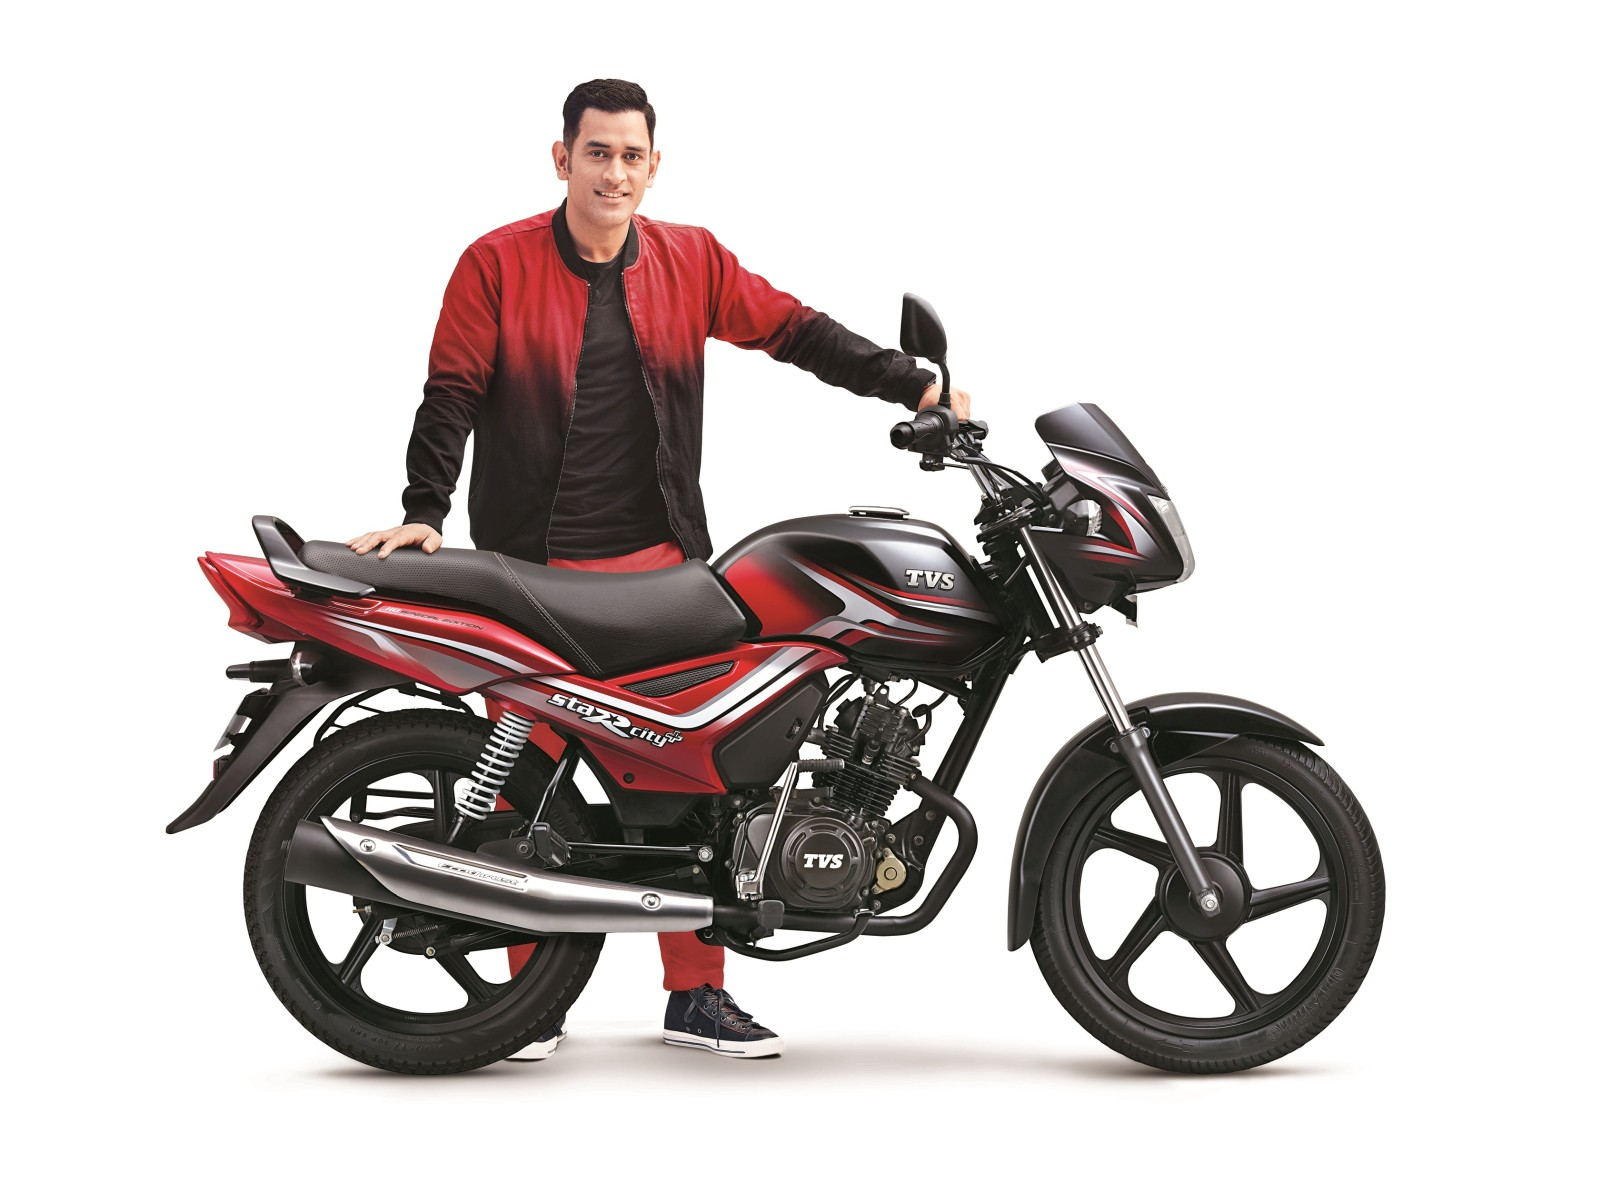 New, dual tone styled TVS StaR City+ has also arrived for the festive season. The 110cc, motorcycle now boasts of new design cues, a TVS chrome 3D label ...